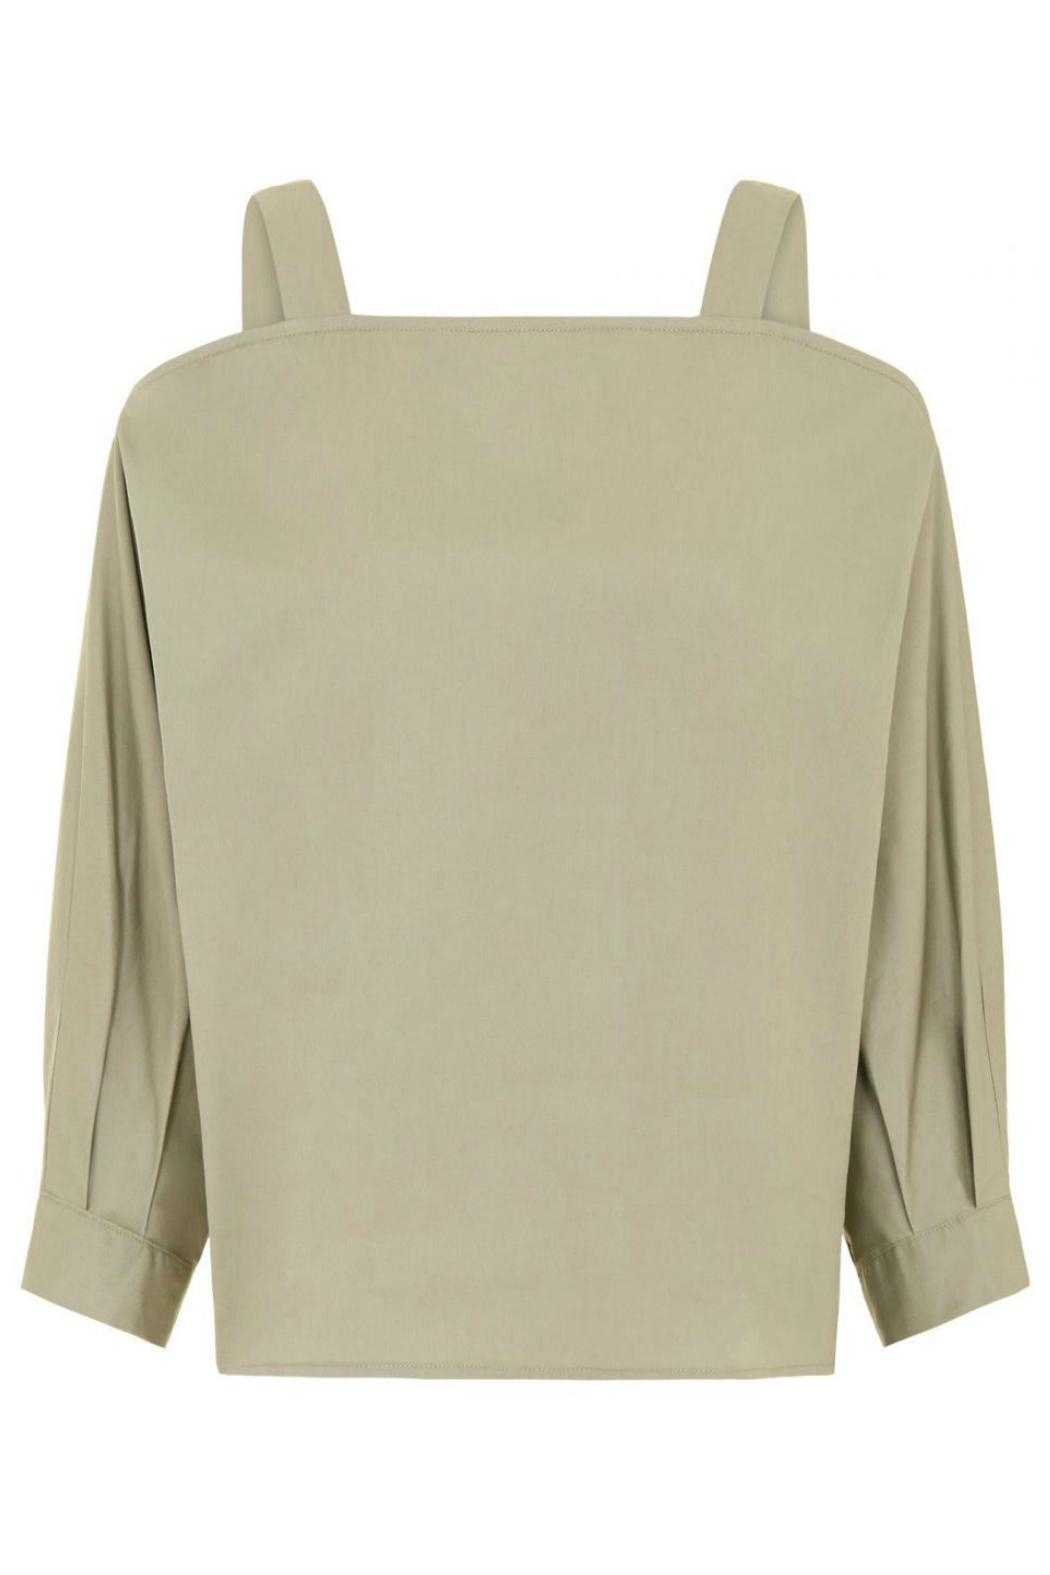 Apricot The Dolman Top - Main Image